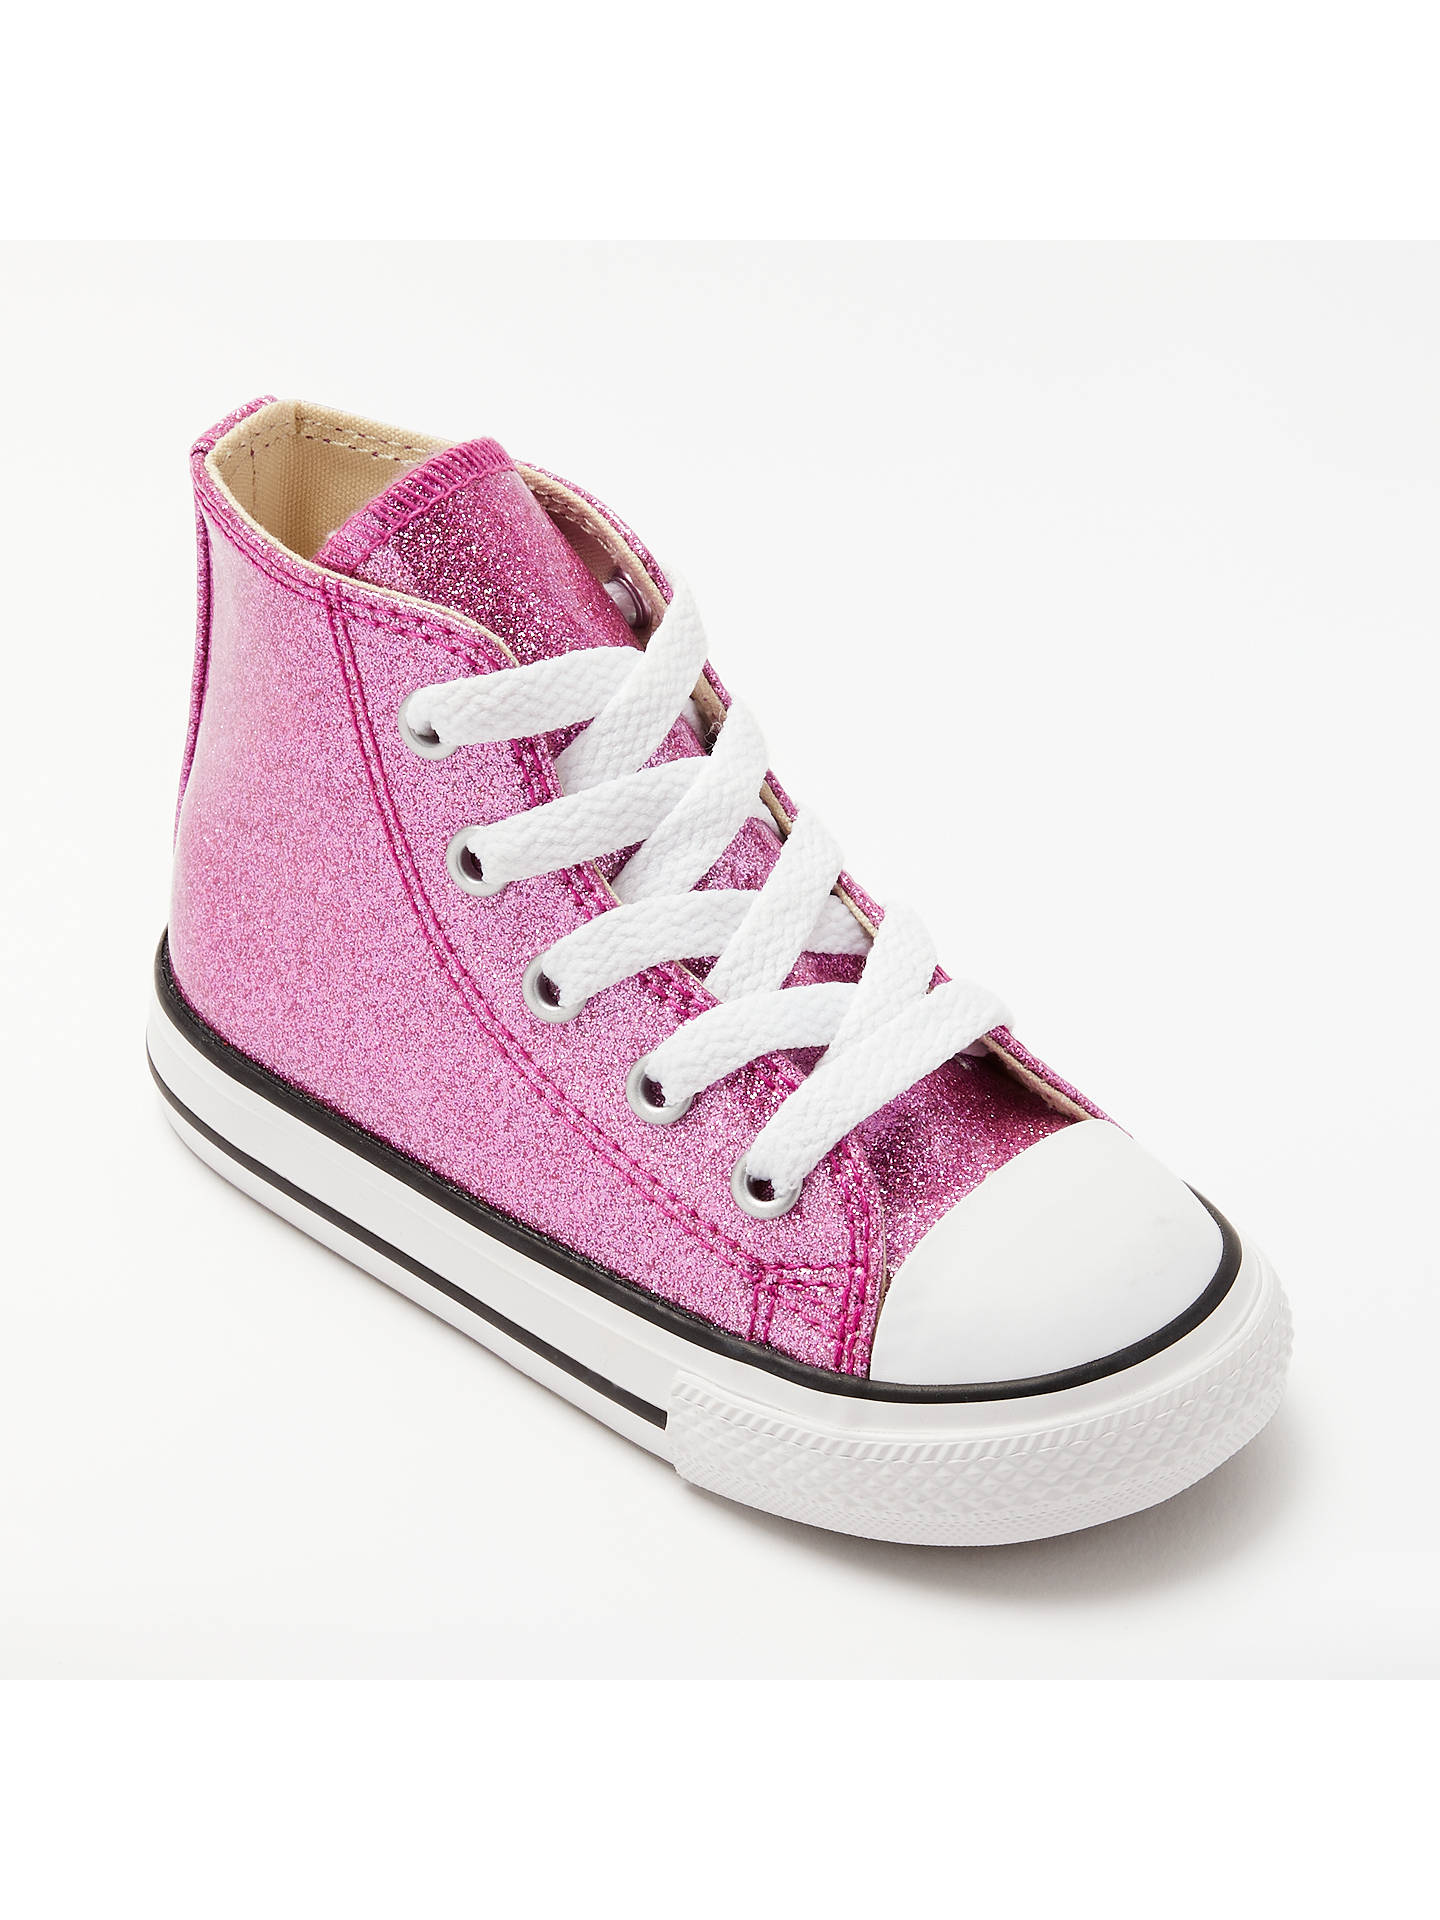 818ecdc3b32c Buy Converse Chuck Taylor All Star Hi-Top Trainers